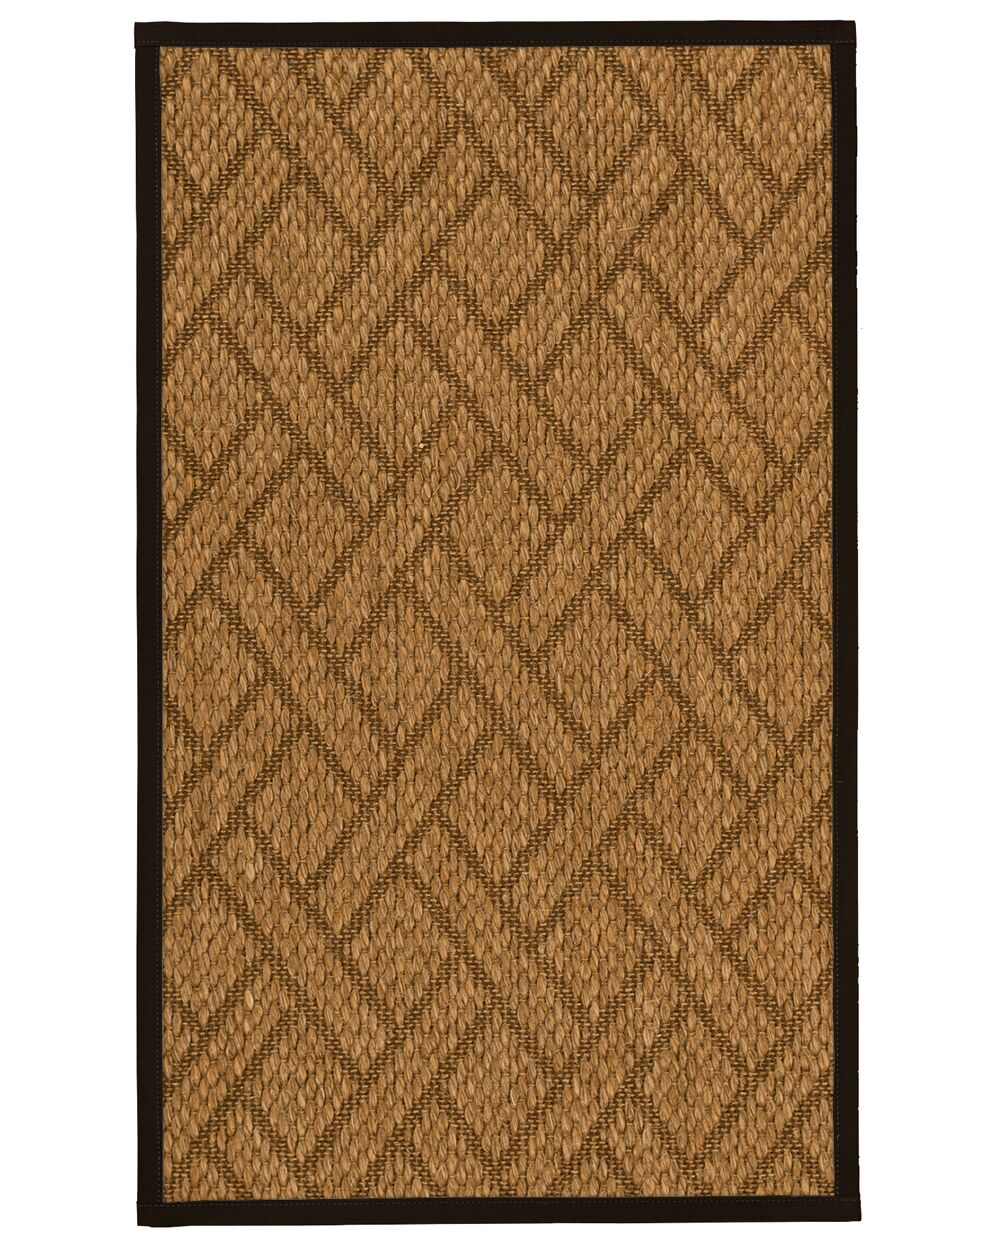 Adelyn Handwoven Flatweave Beige Area Rug Rug Size: Rectangle 8' x 10'